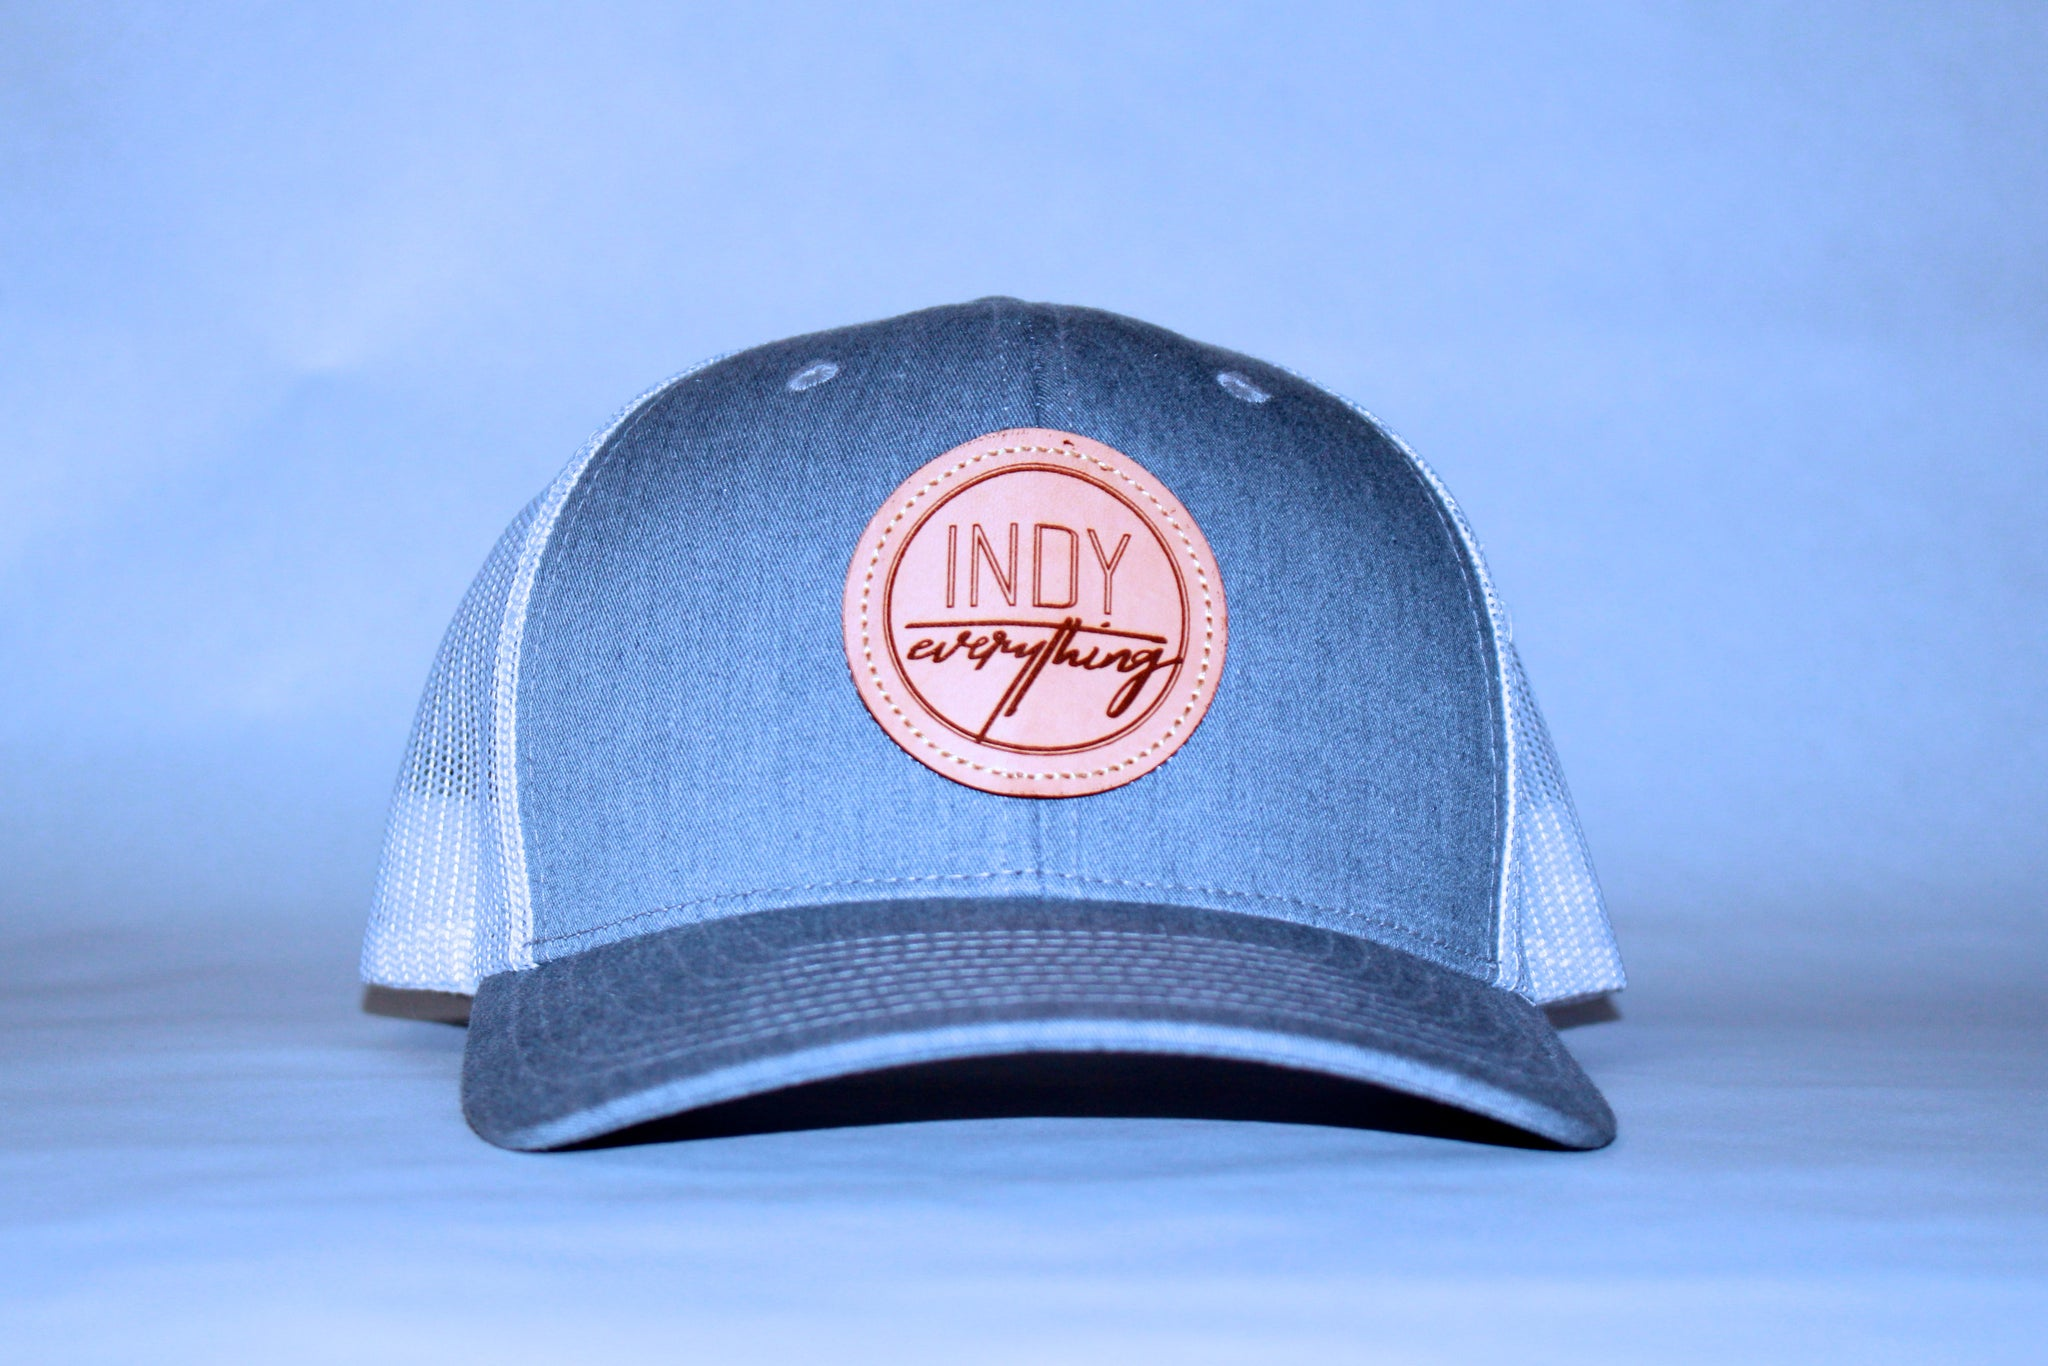 TRUCKER HAT - GRAY AND WHITE W/ LEATHER BADGE - Indy Over Everything